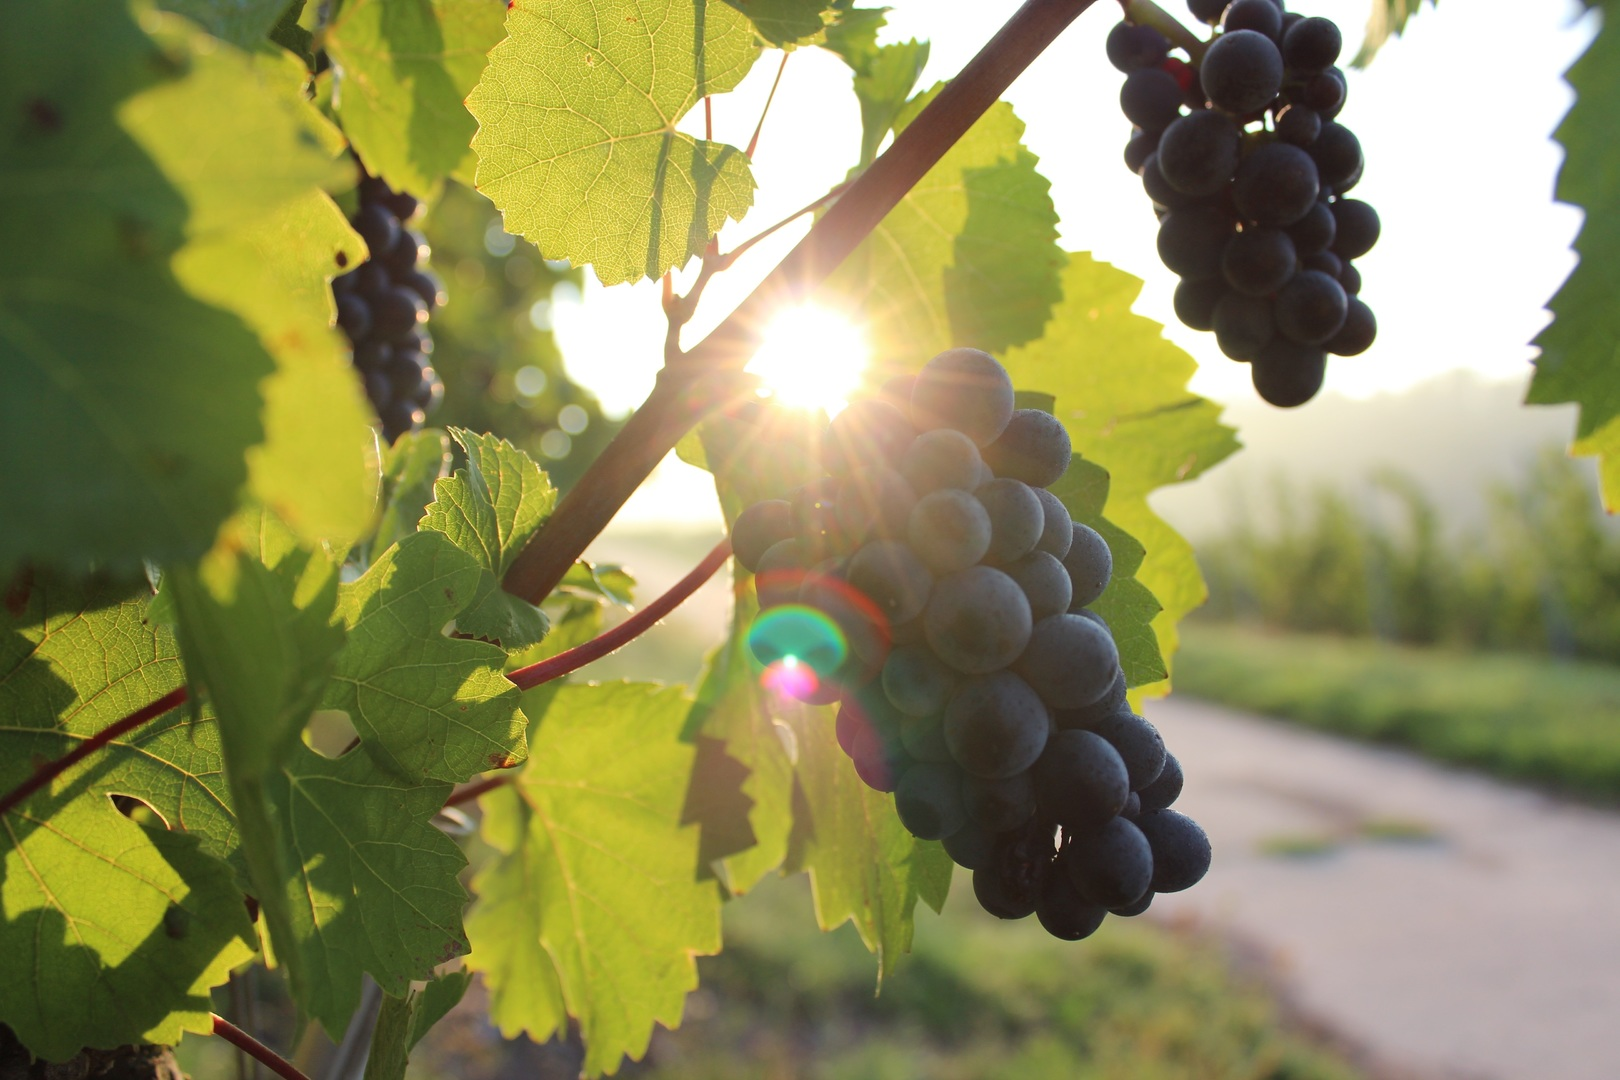 nature-plant-grape-vine-vineyard-bunch-1062577-pxhere.com.jpg?1557826655